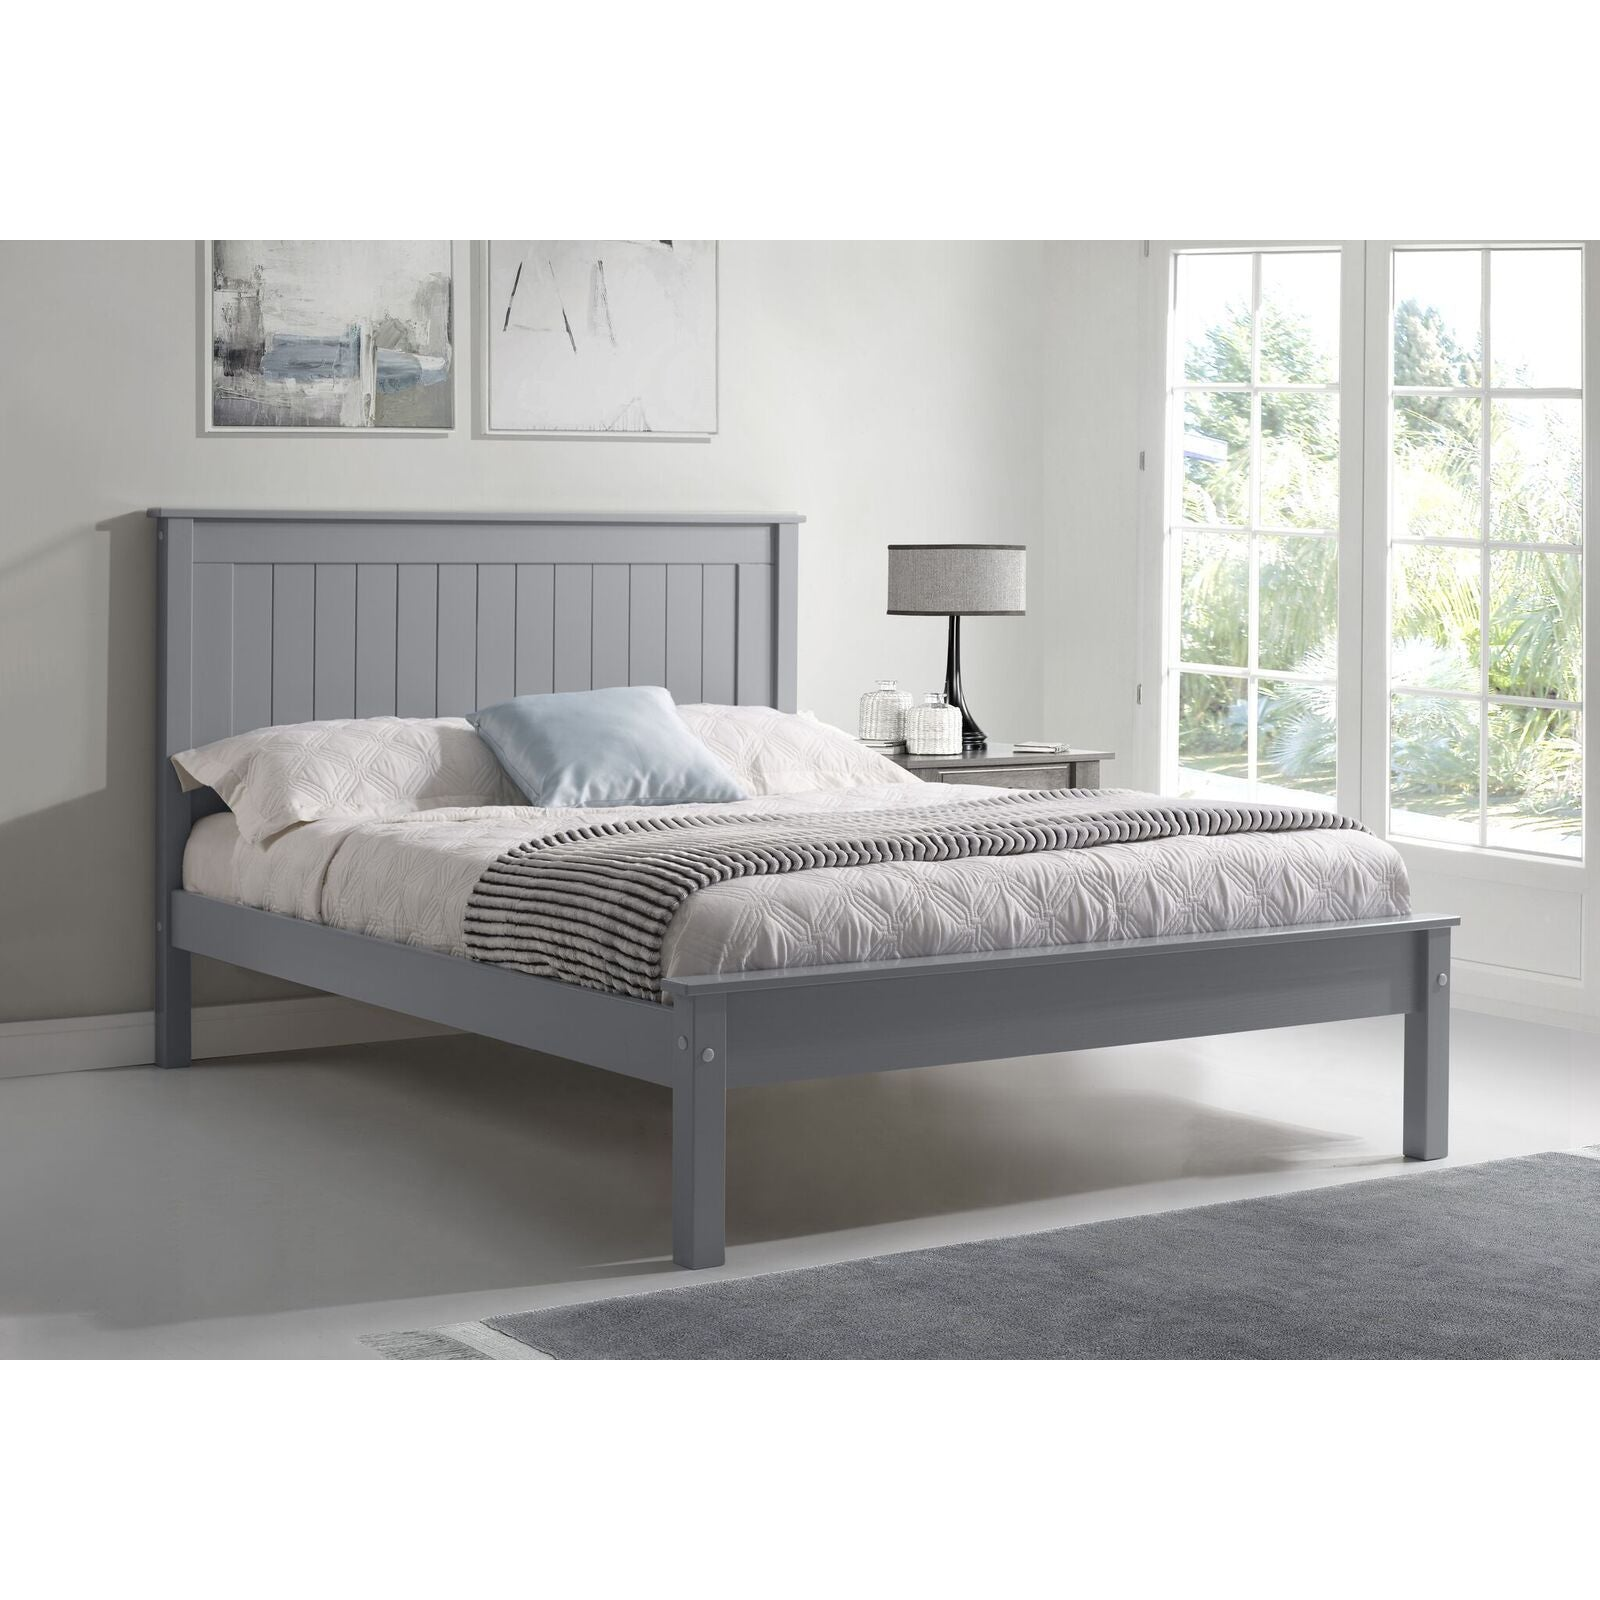 Kara Grey Painted Low Foot End Wooden Bed Frame Furnicomp